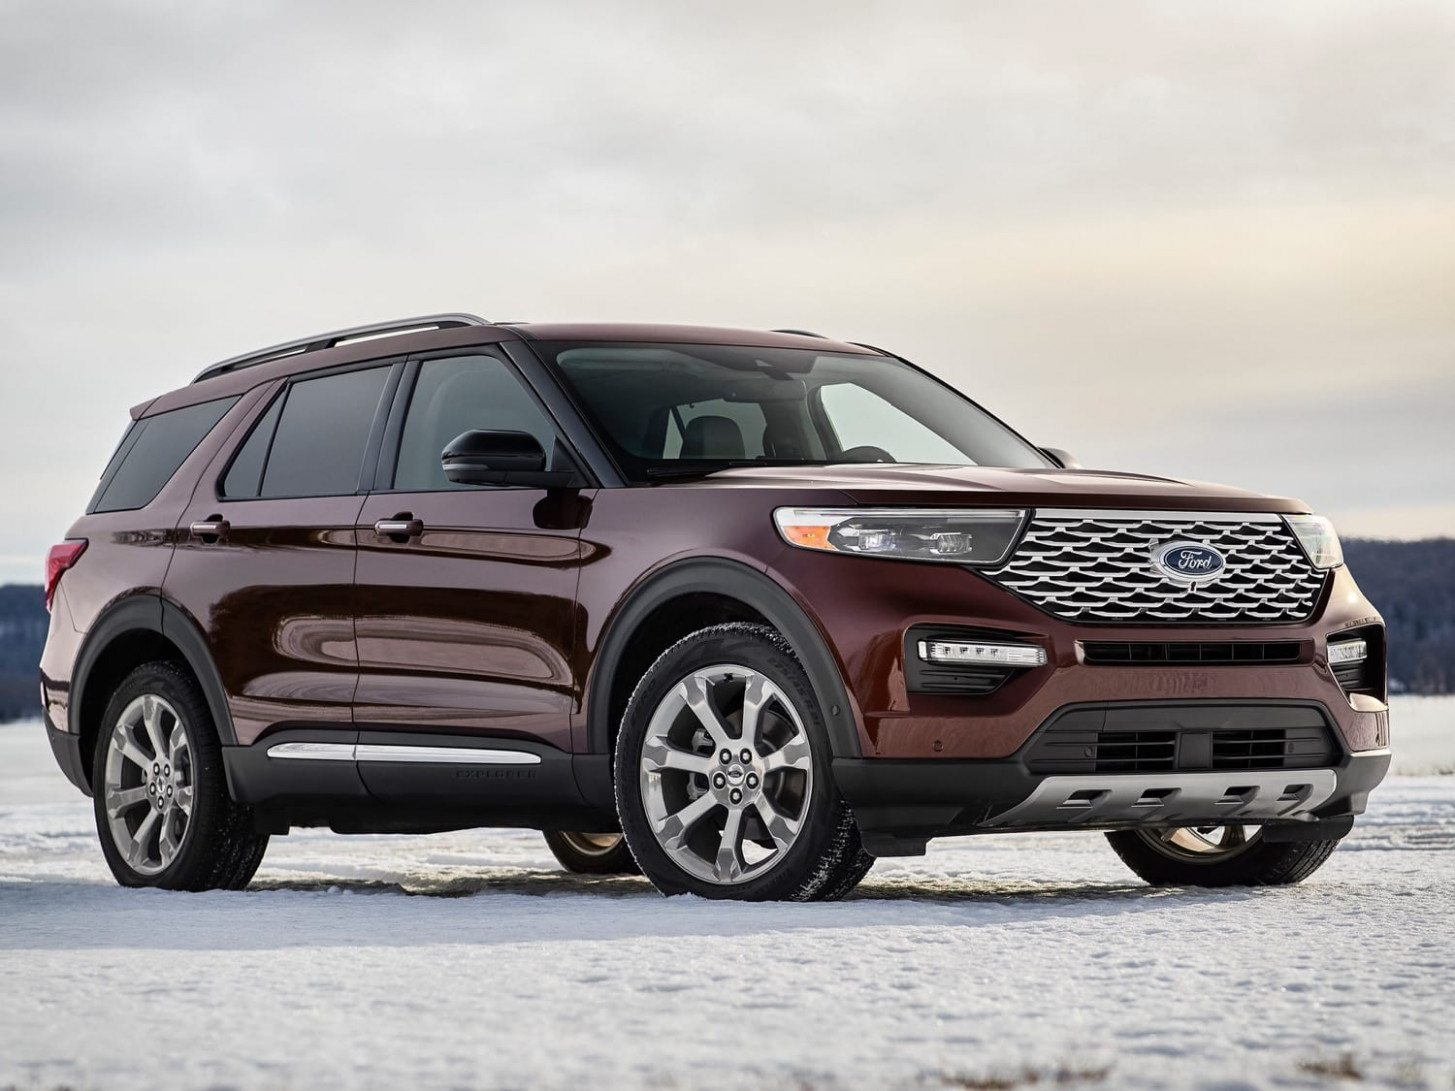 Photos When Does The 2022 Ford Explorer Come Out